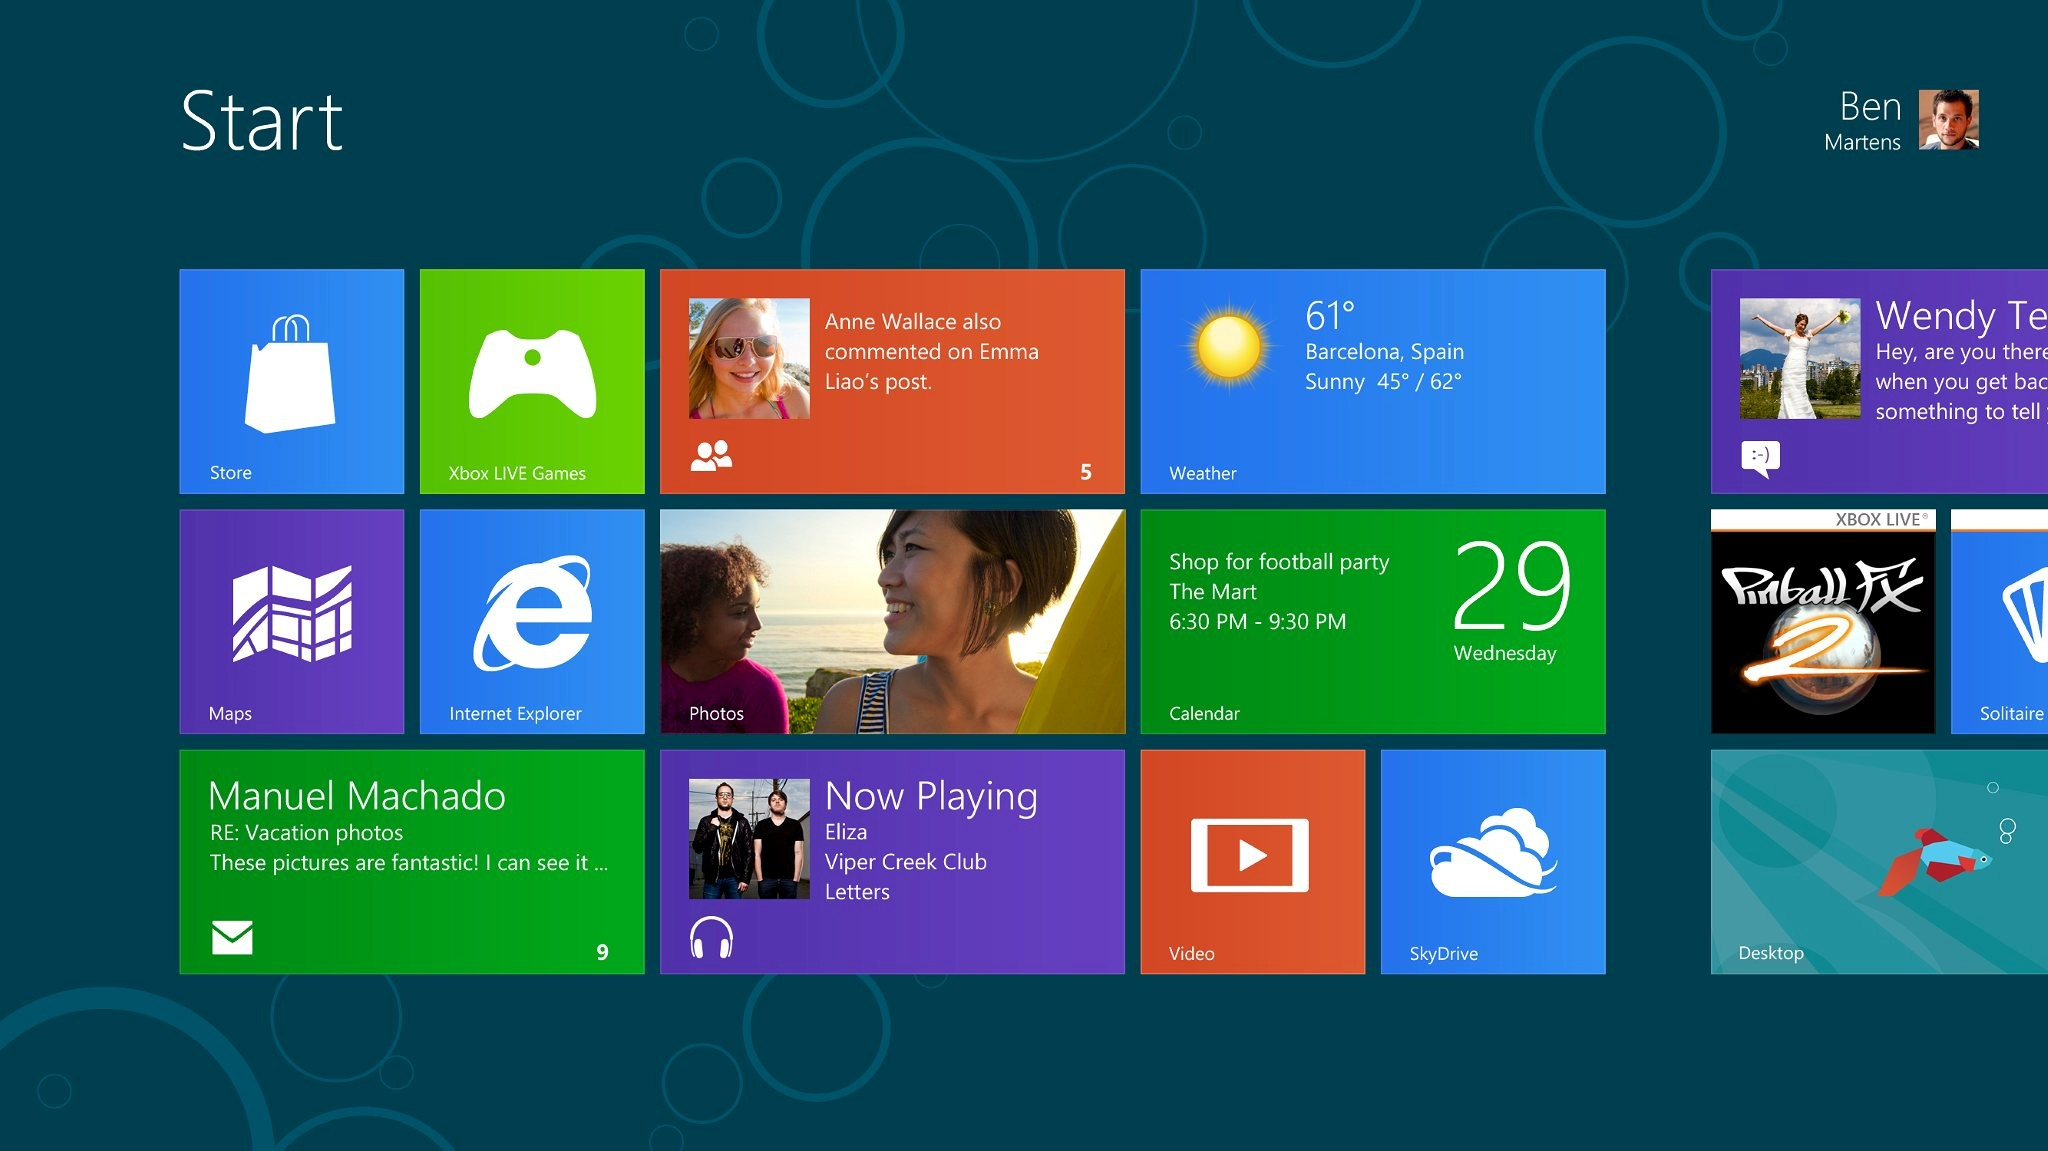 The new Windows 8 Consumer Preview Start screen